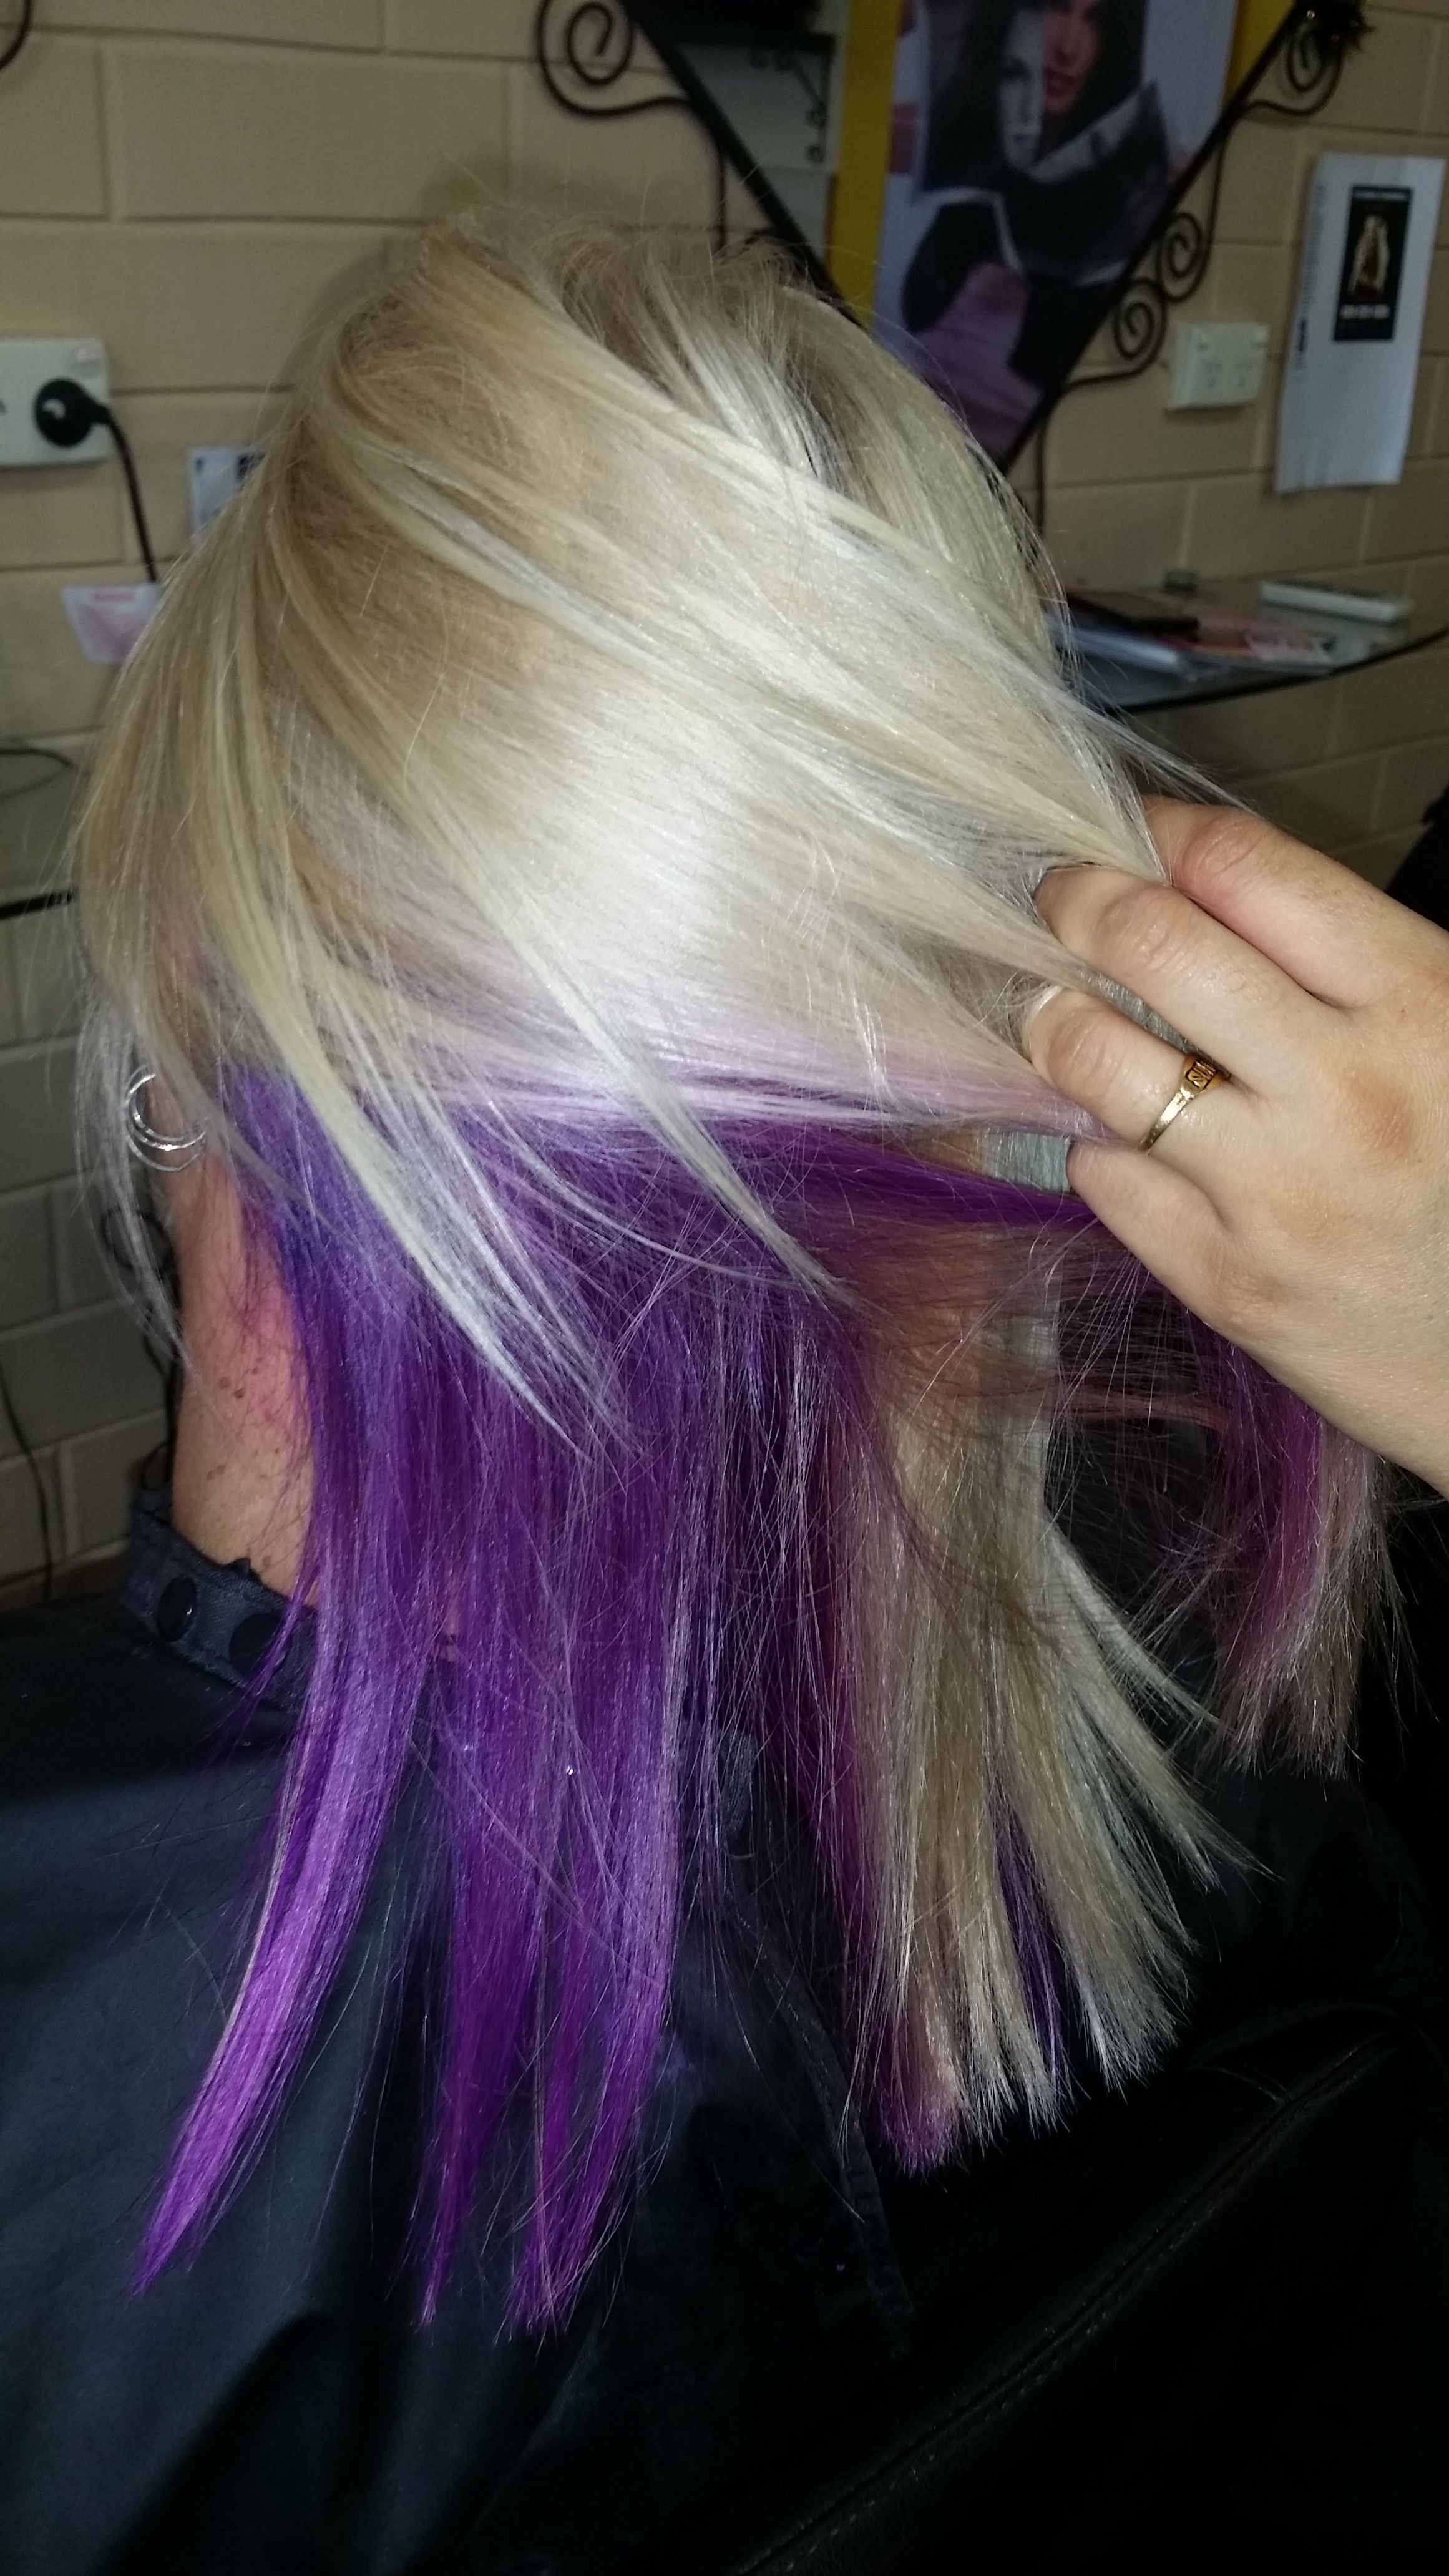 Brooke S Peek A Boo Purple With Blonde Hair Www Hair Salon Noarlunga Com Au For Great Deals Purple Blonde Hair Hair Color Highlights Blonde Hair Color